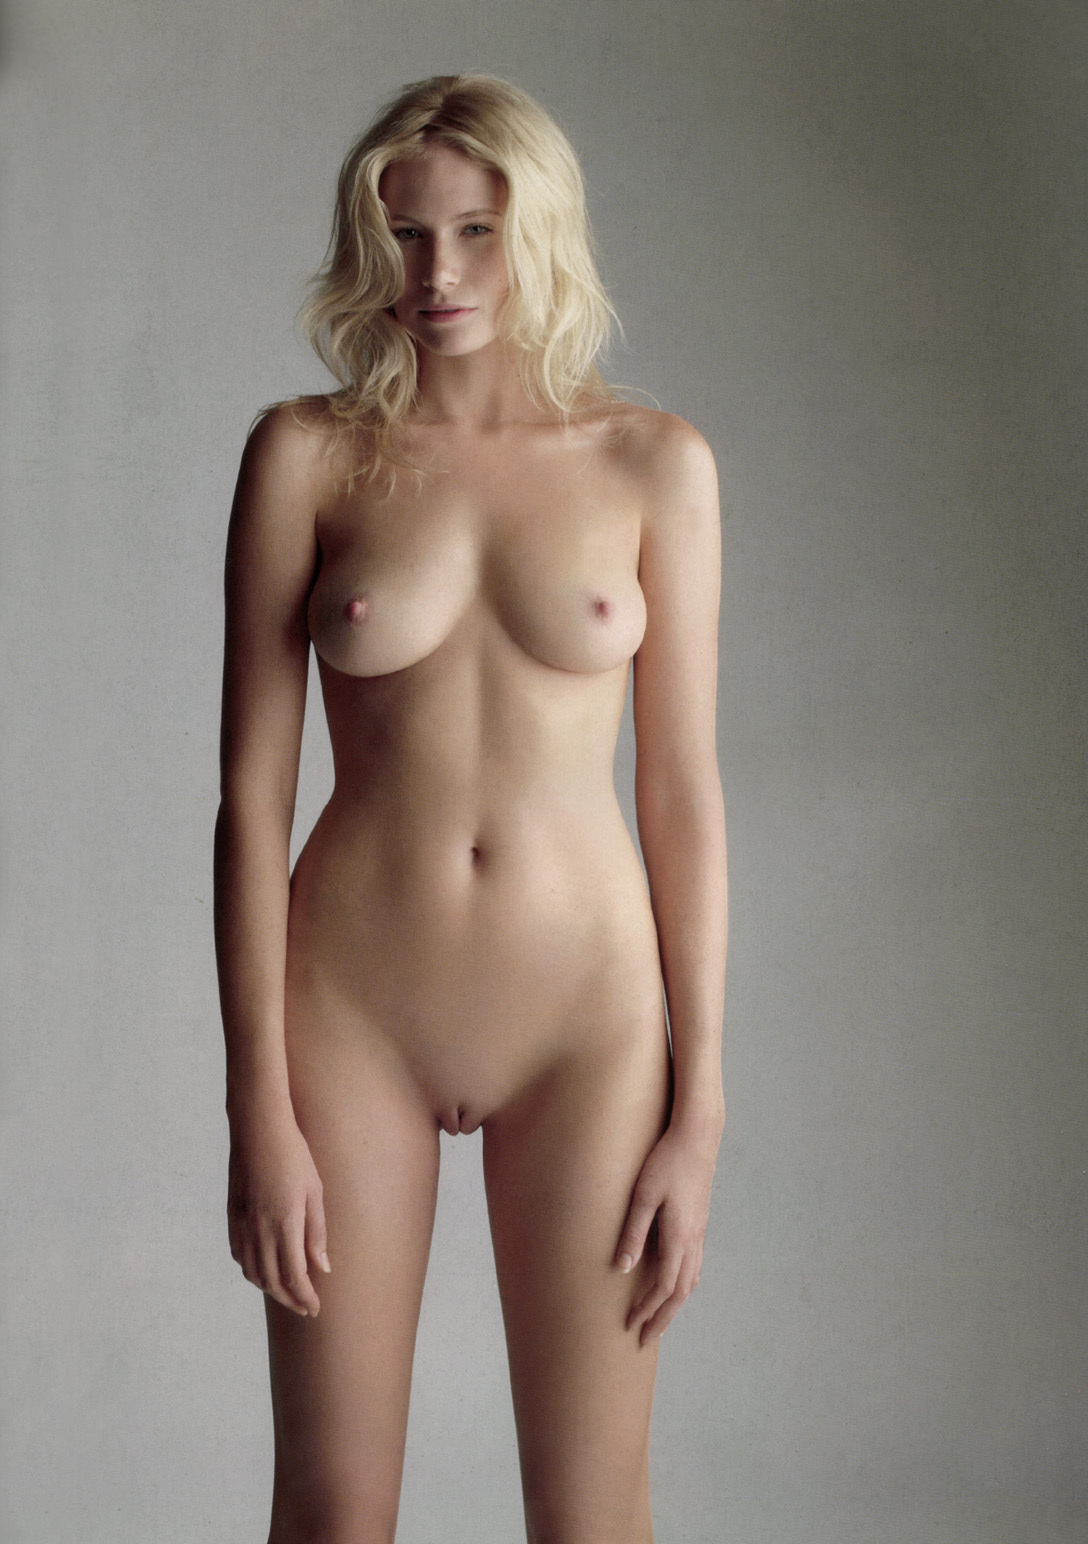 vedete nud